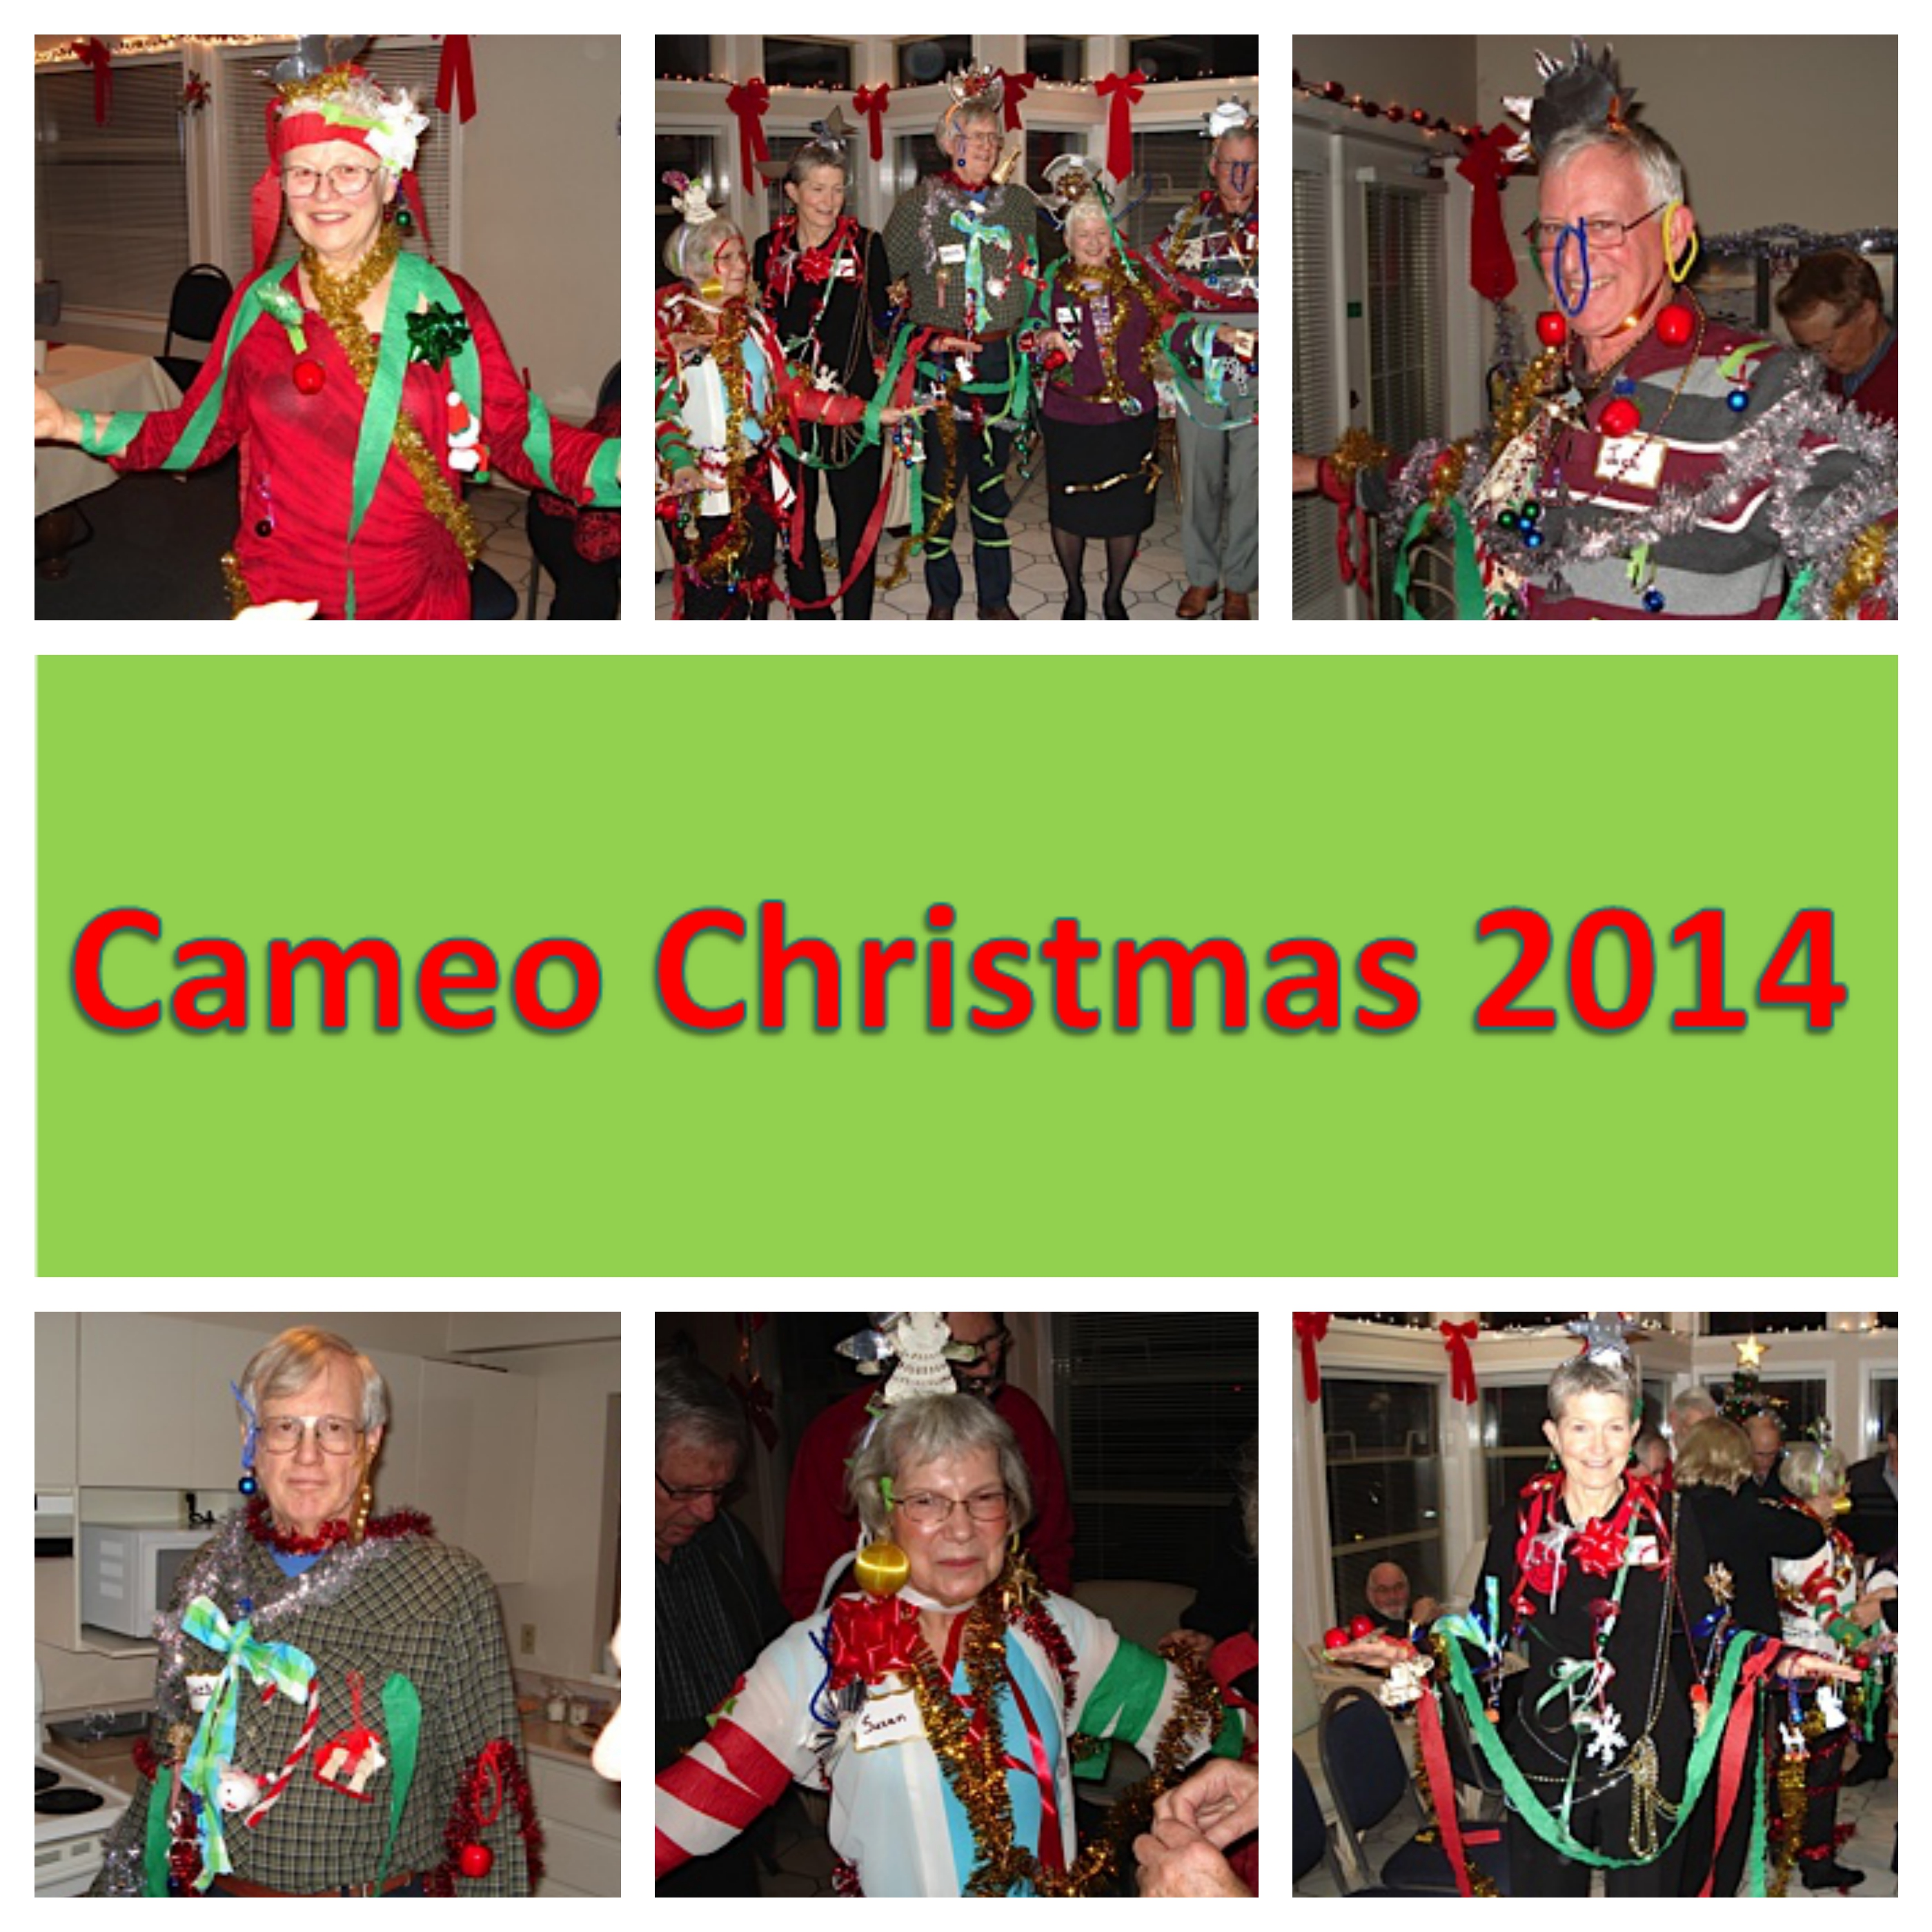 2014 Cameo Christmas Sign_Fotor_Collage